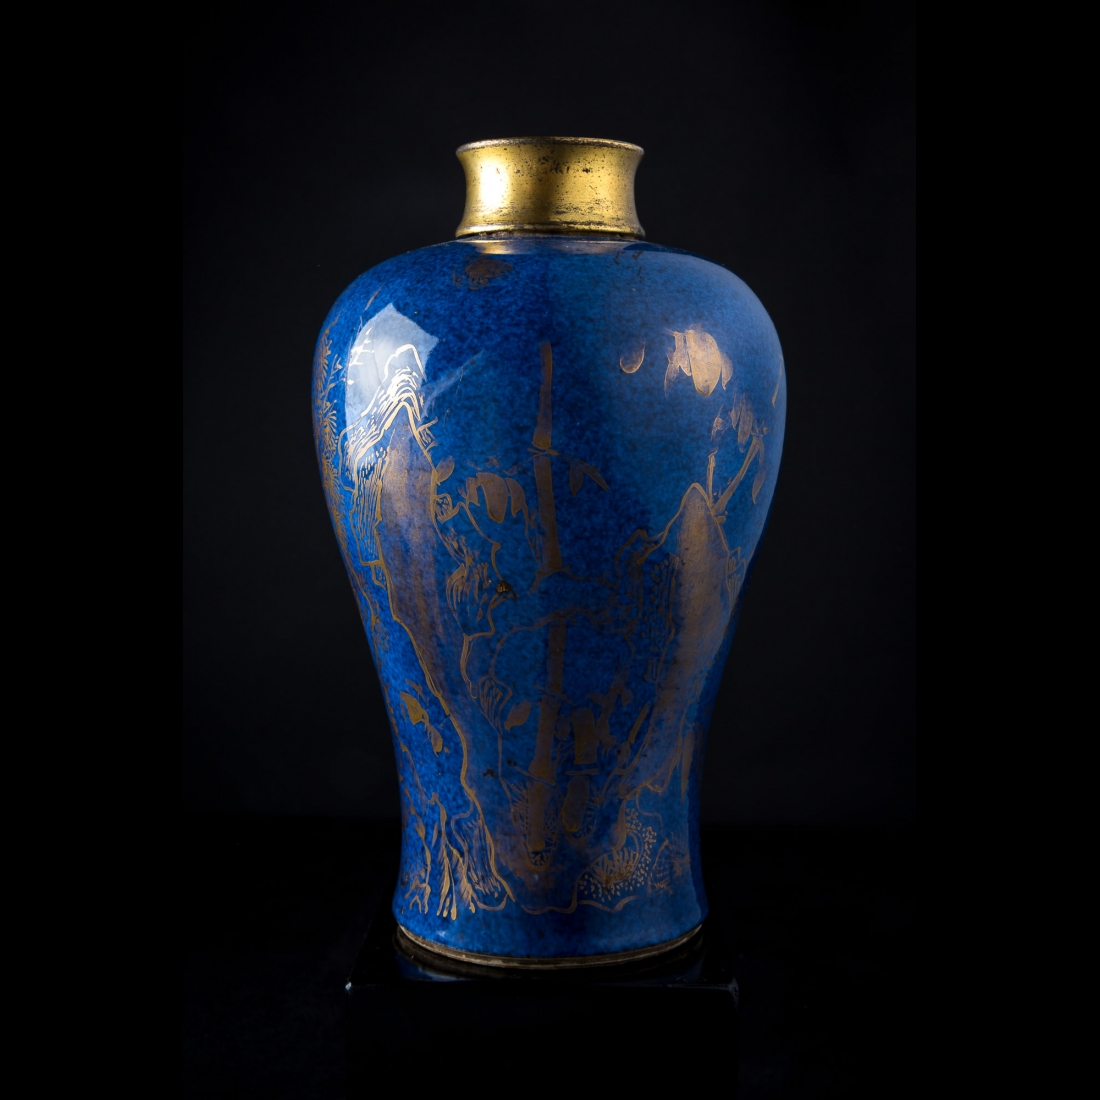 Photo of archaic-and-imperial-china-ceramic-vase